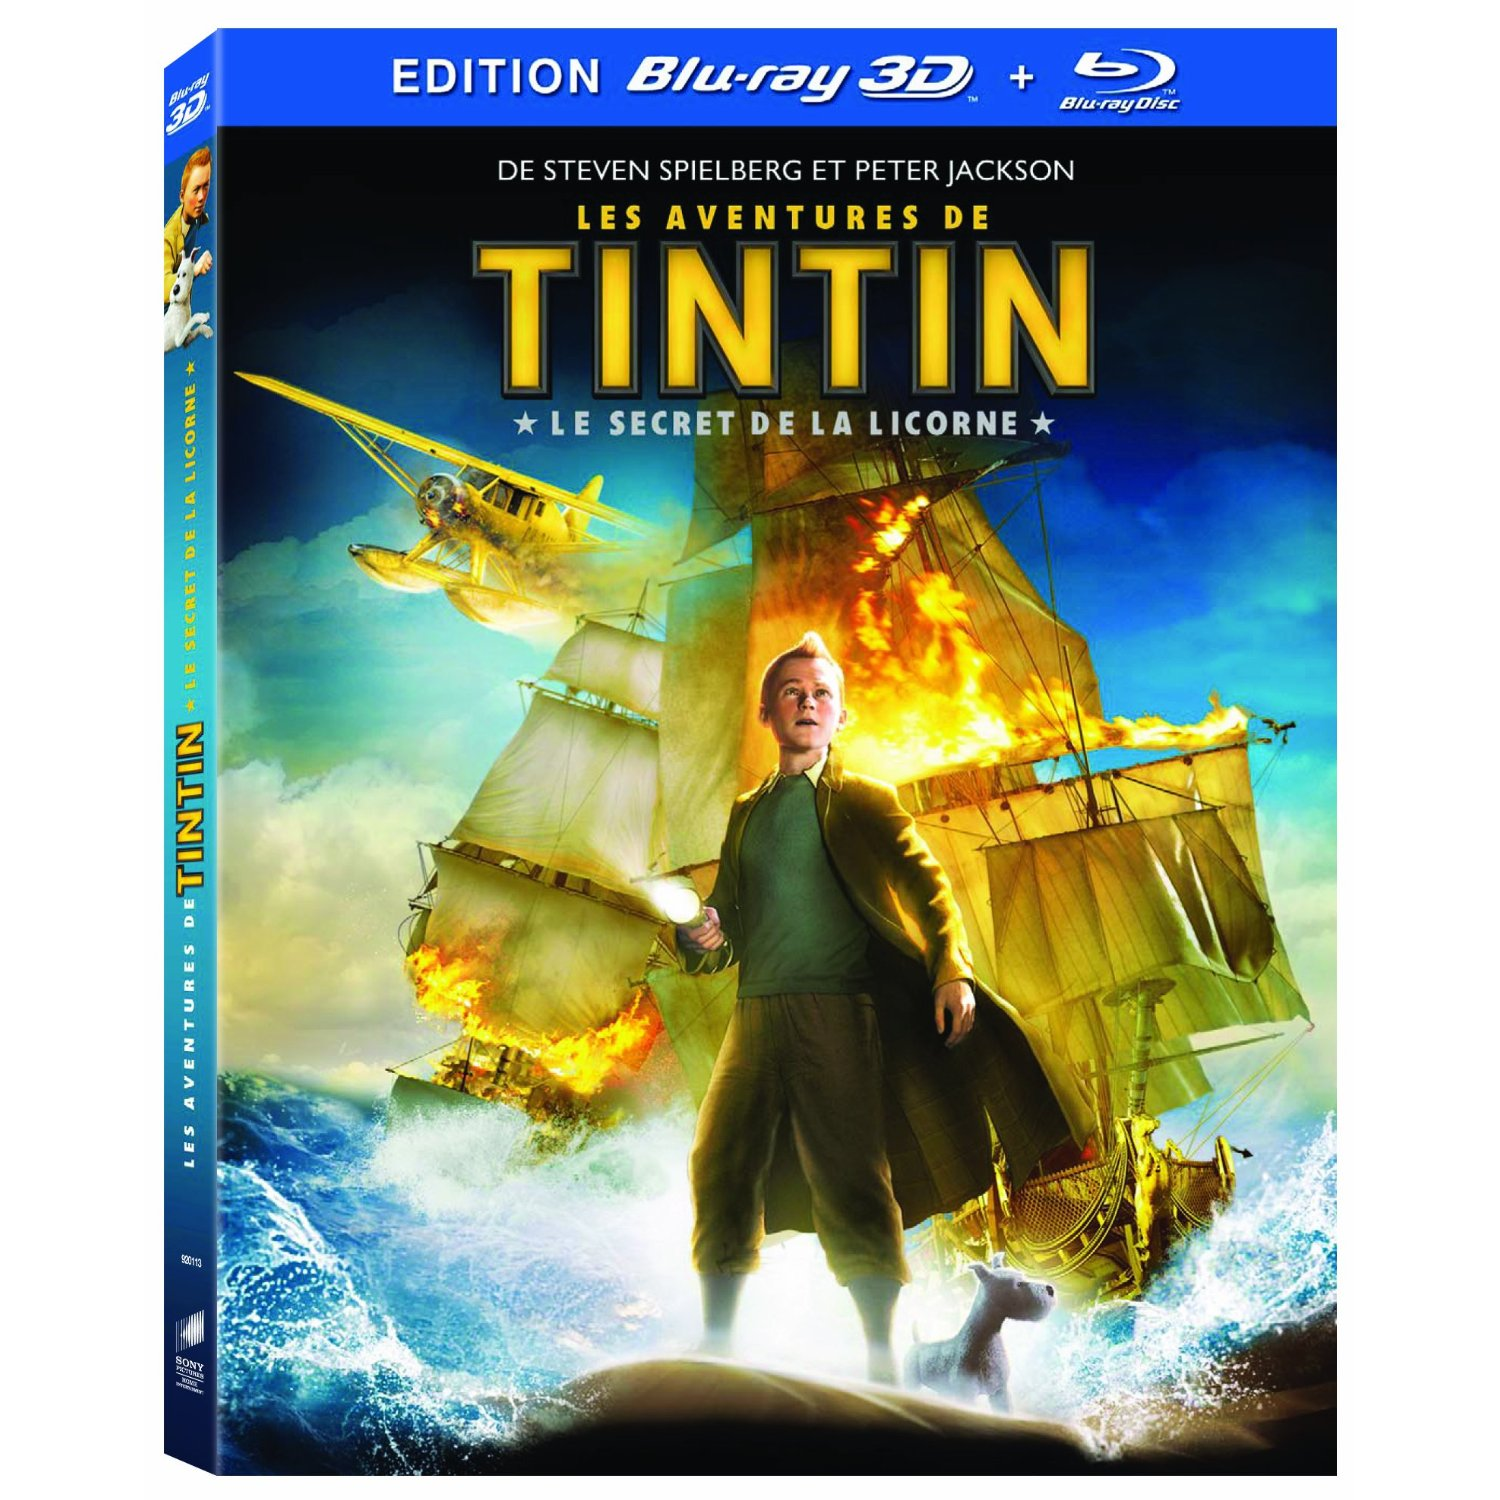 Blu-ray disc 3D Tintin